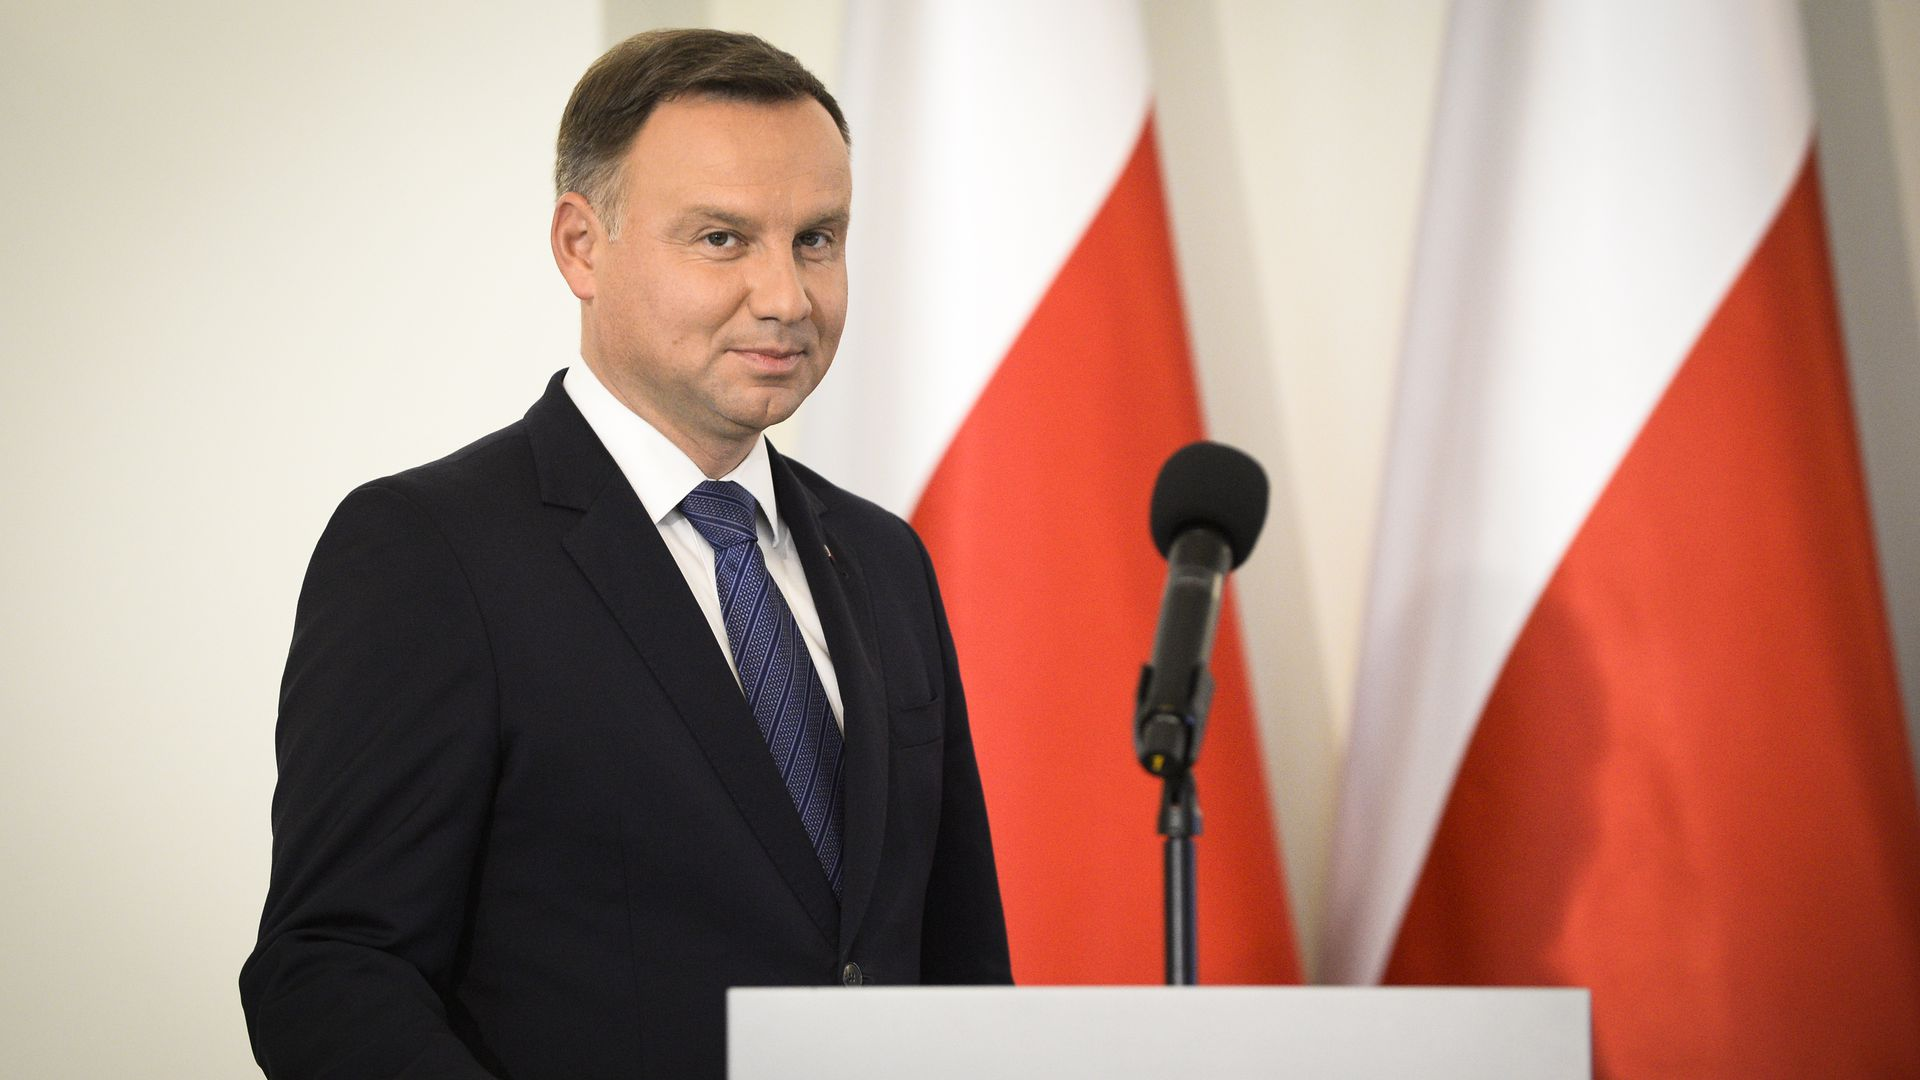 President Duda announces recipients of the Order of the White Eagle at at the Presidential Palace in Warsaw, Poland on September 12, 2018.